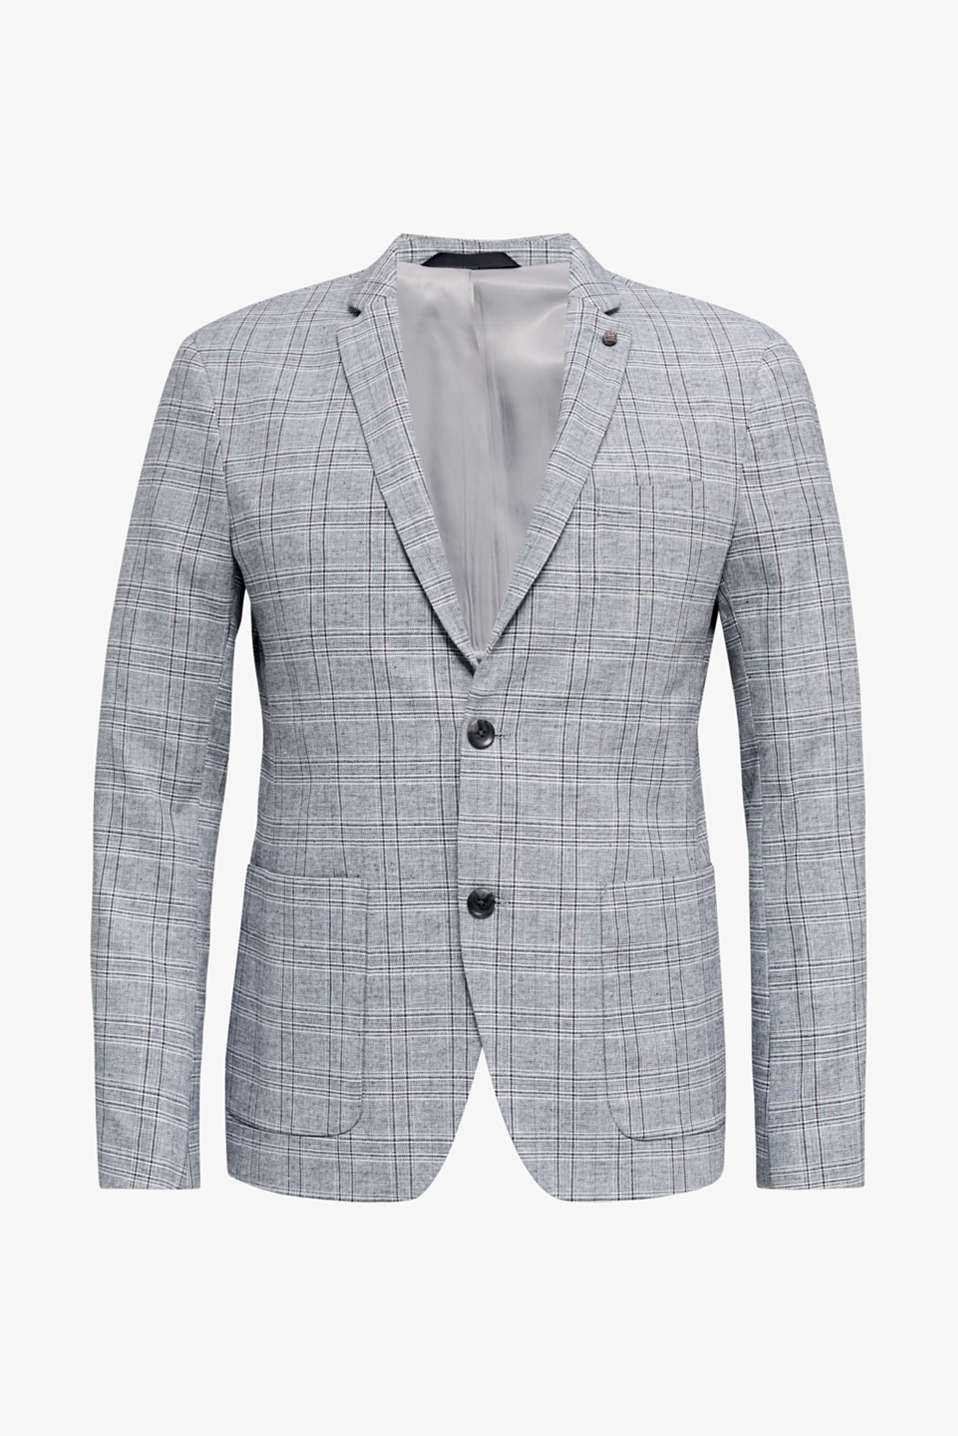 SUMMER CHECK mix + match tailored jacket, BLUE 3, detail image number 6